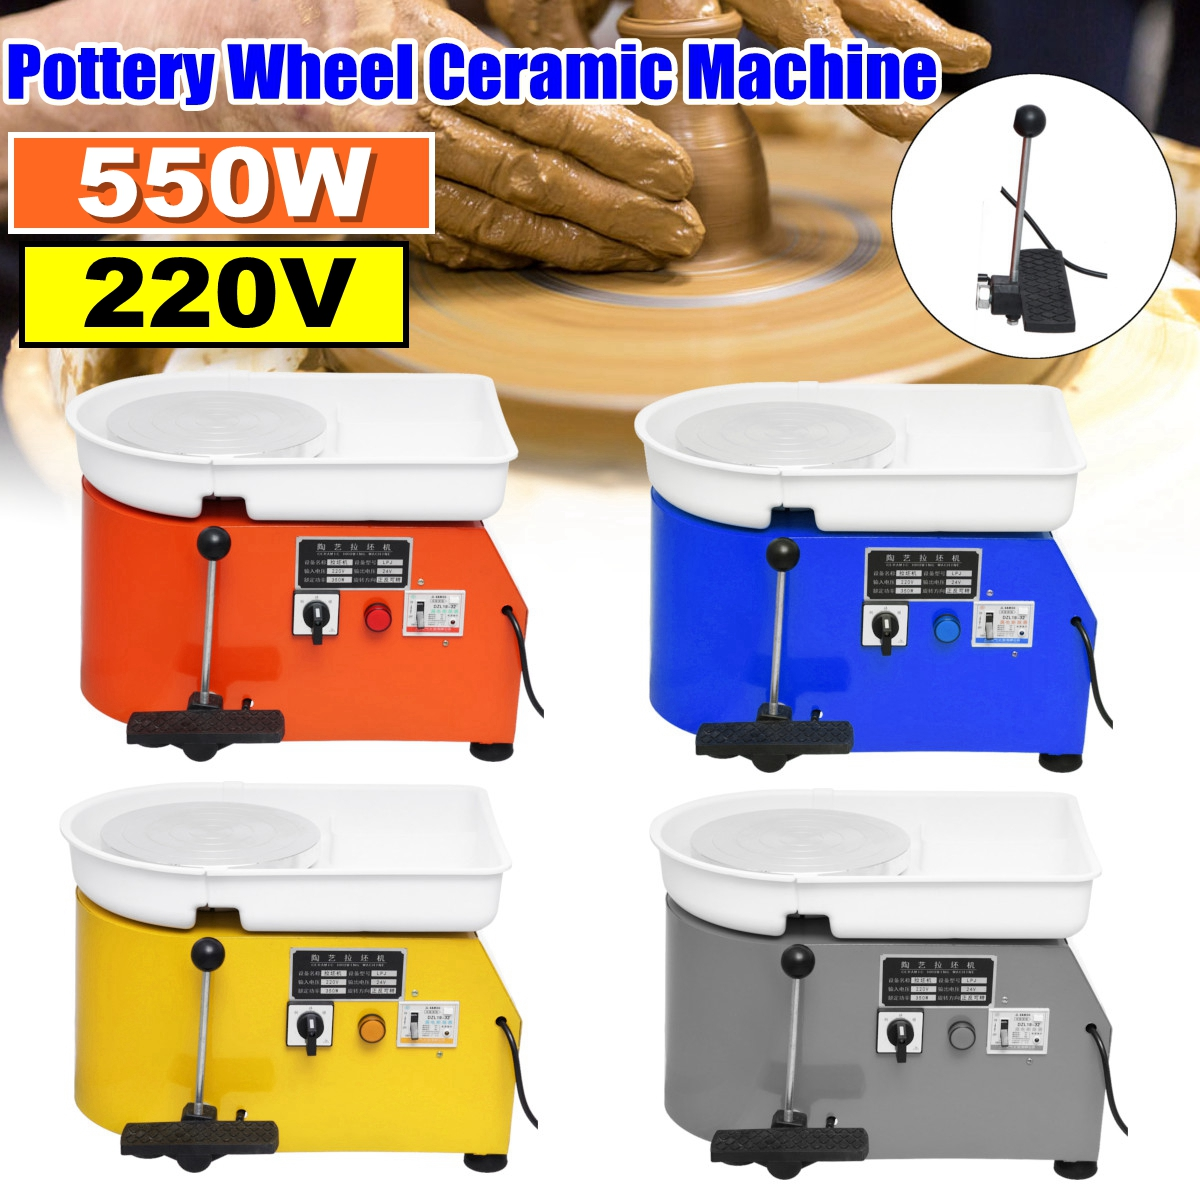 Pottery Wheel Machine  25cm AC 220V 550W Flexible Manual pedal Ceramic Work Ceramics Clay Art With Mobile Smooth Low NoisePottery Wheel Machine  25cm AC 220V 550W Flexible Manual pedal Ceramic Work Ceramics Clay Art With Mobile Smooth Low Noise